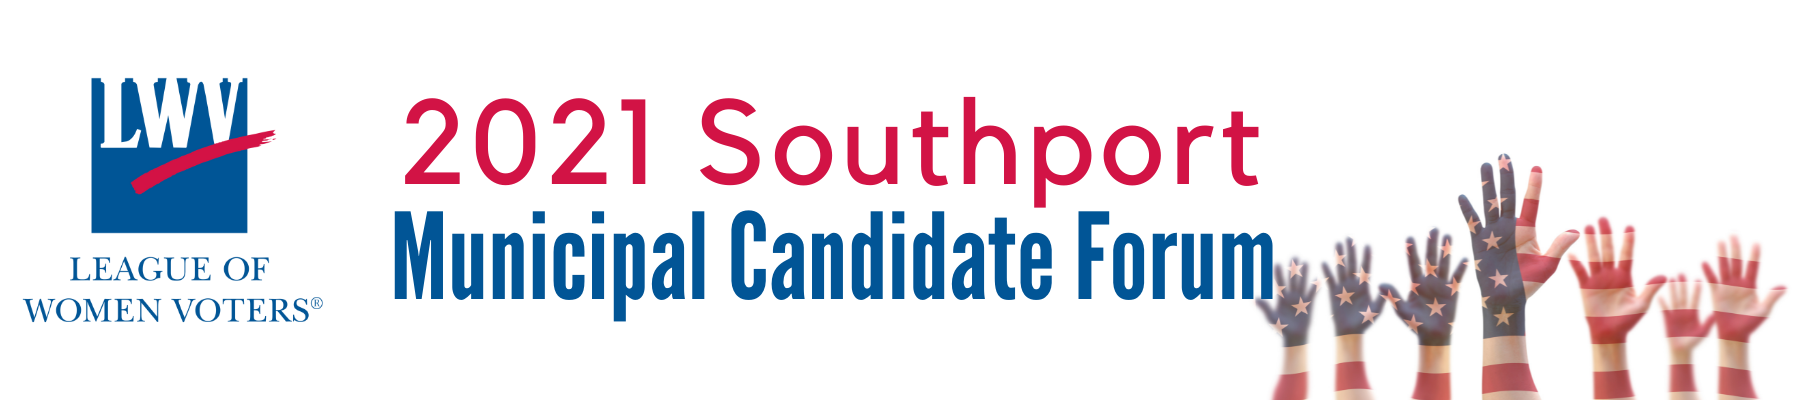 Southport Candidate Forum